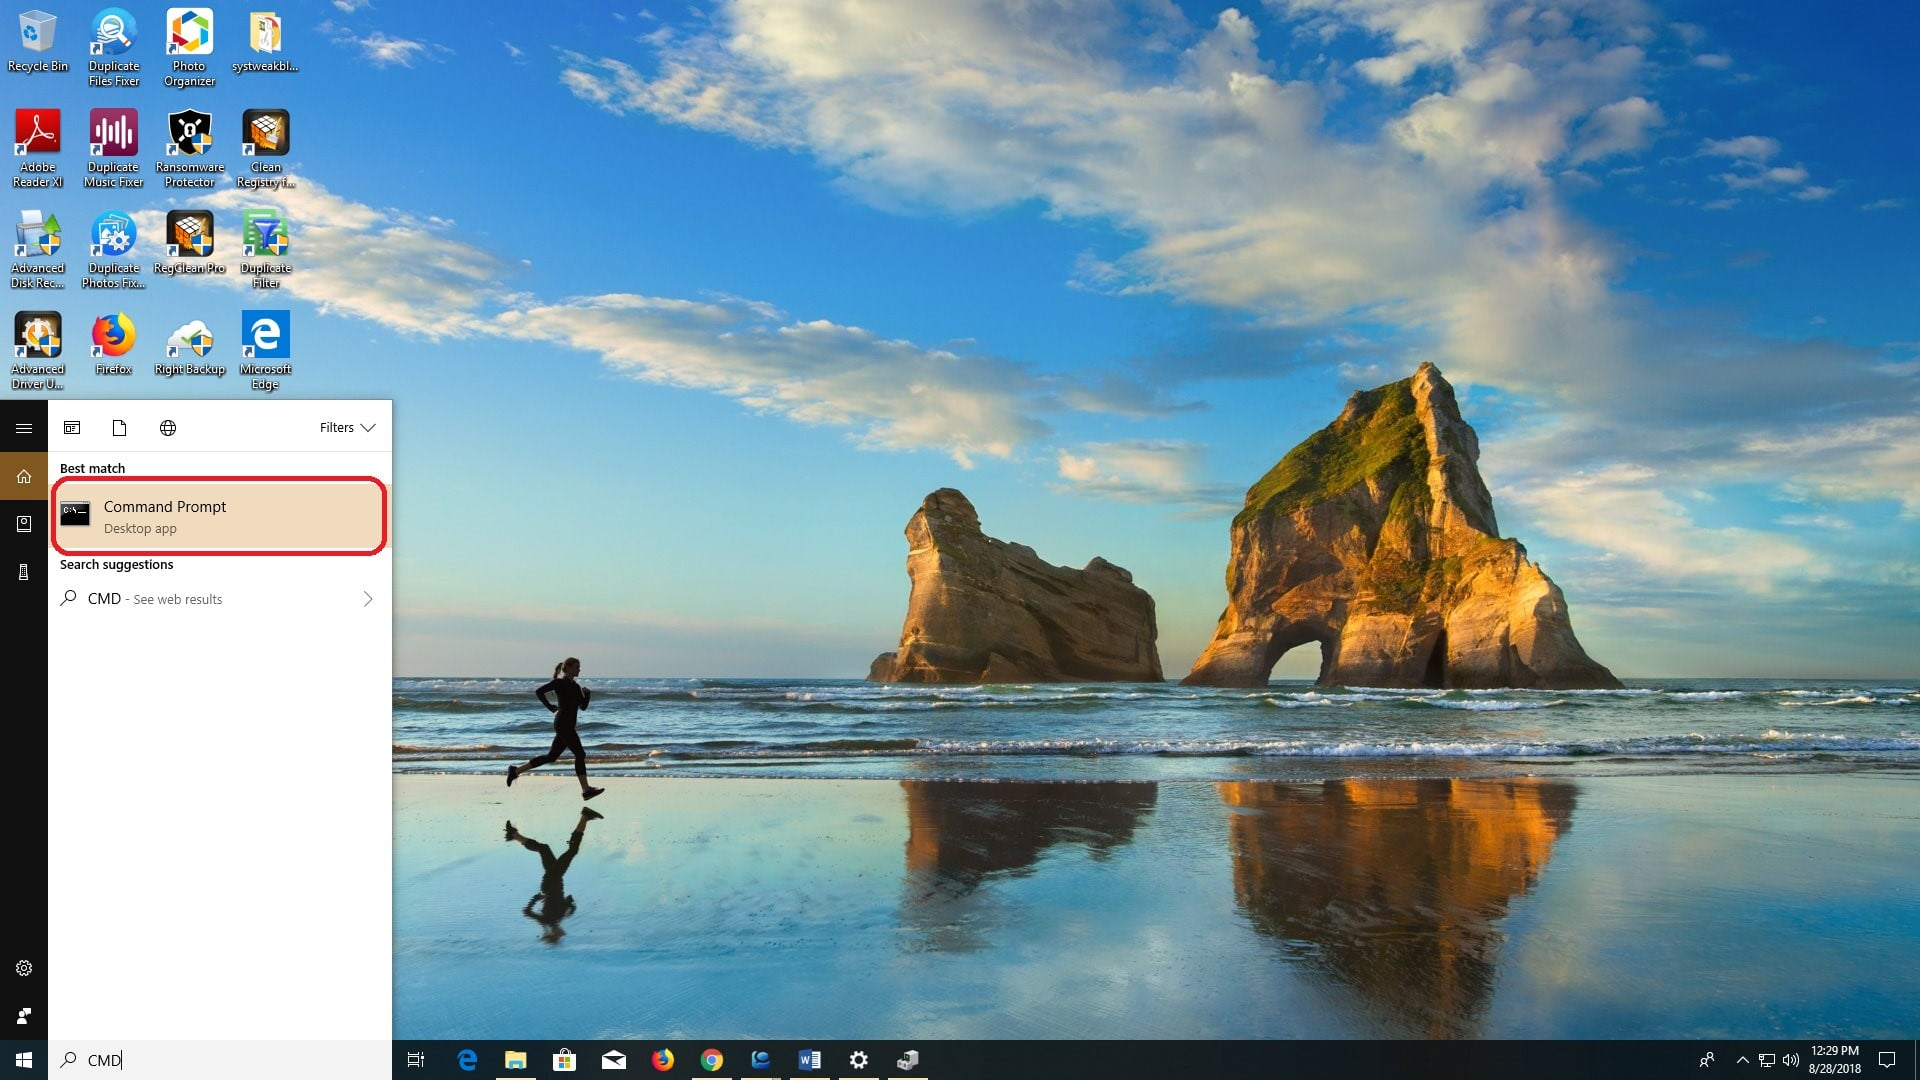 How To Fix Windows 10 Freezing Problem - August 2018